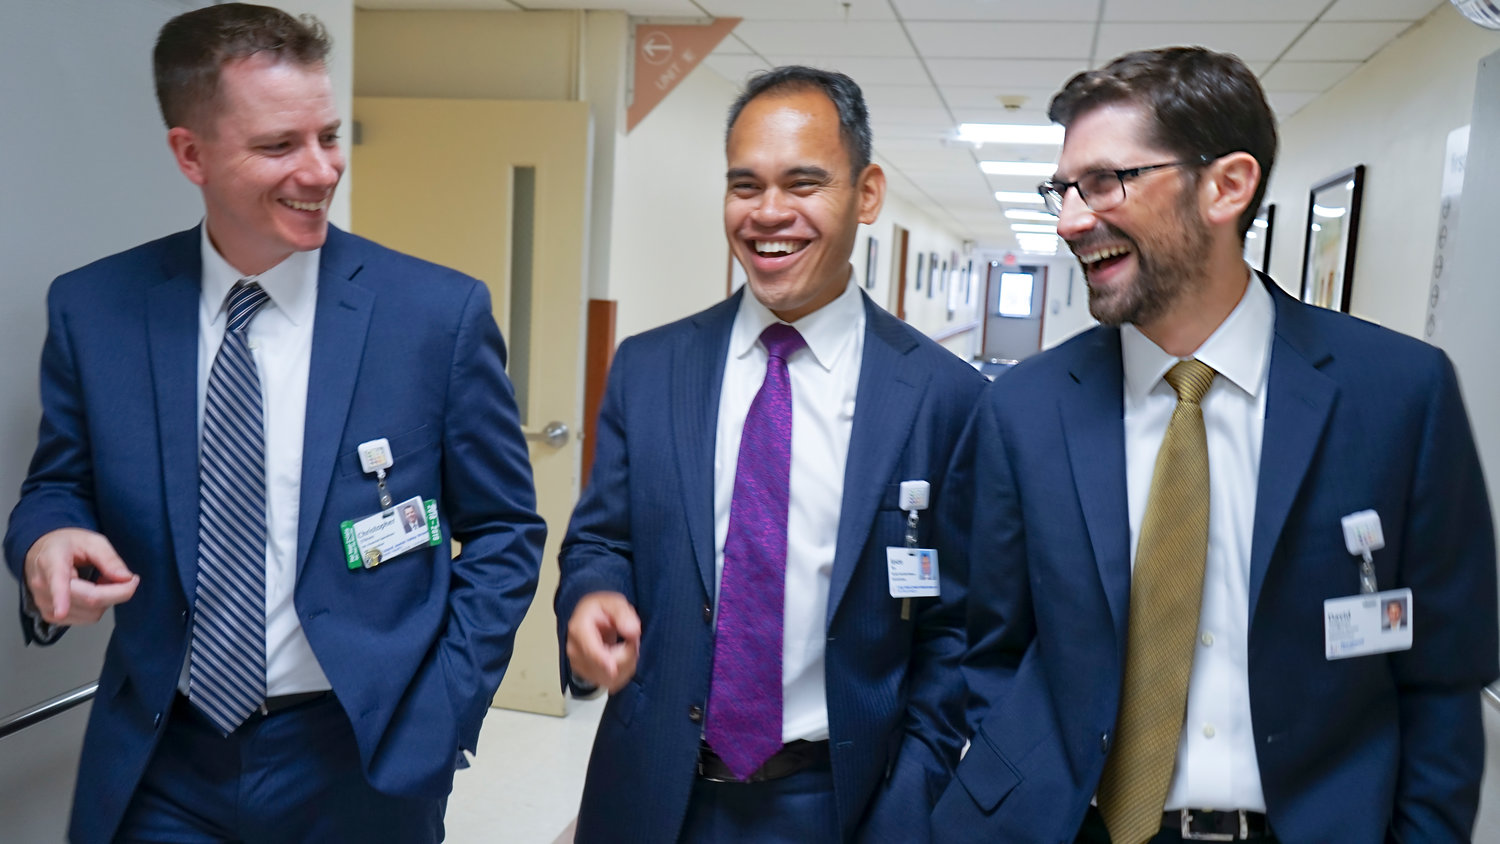 Seligman, far right, with Chris O'Brien, far left, senior director of financial operations at LIJ Valley Stream, and Jason Tan, deputy executive director of administration.